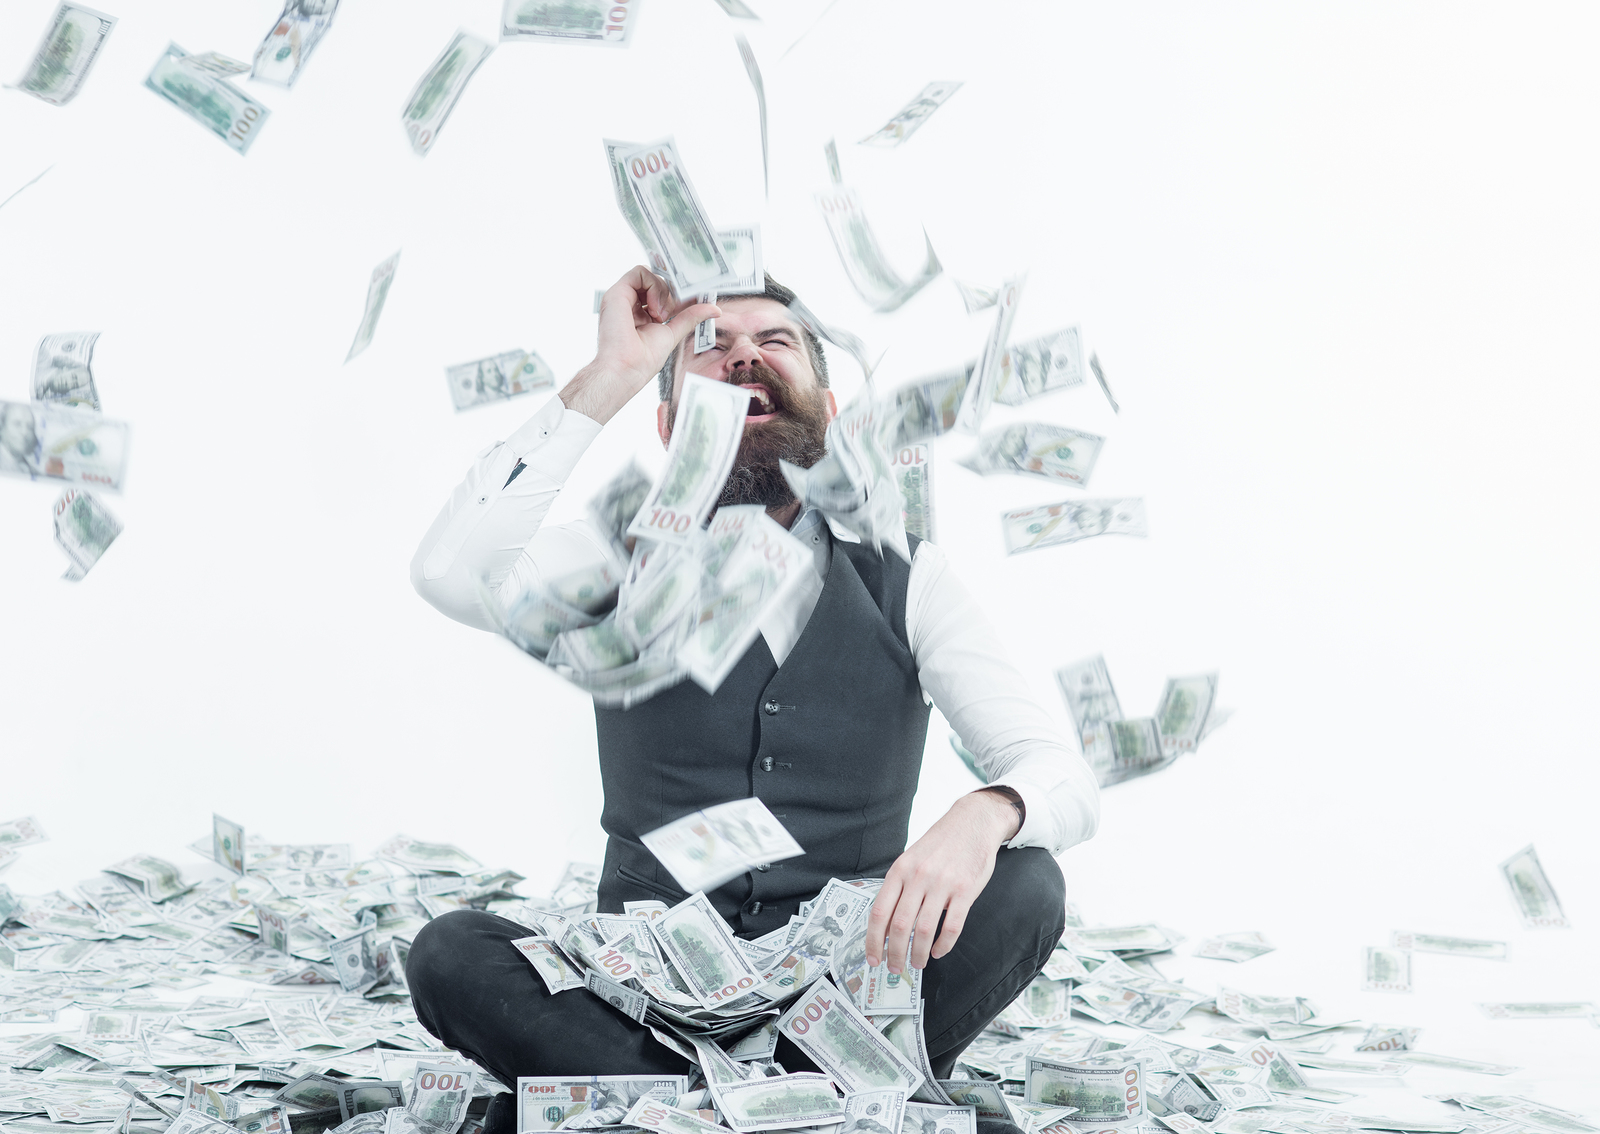 Man in business attire sitting down and laughing in greed about dental web agencies among a shower of hundred dollar bills